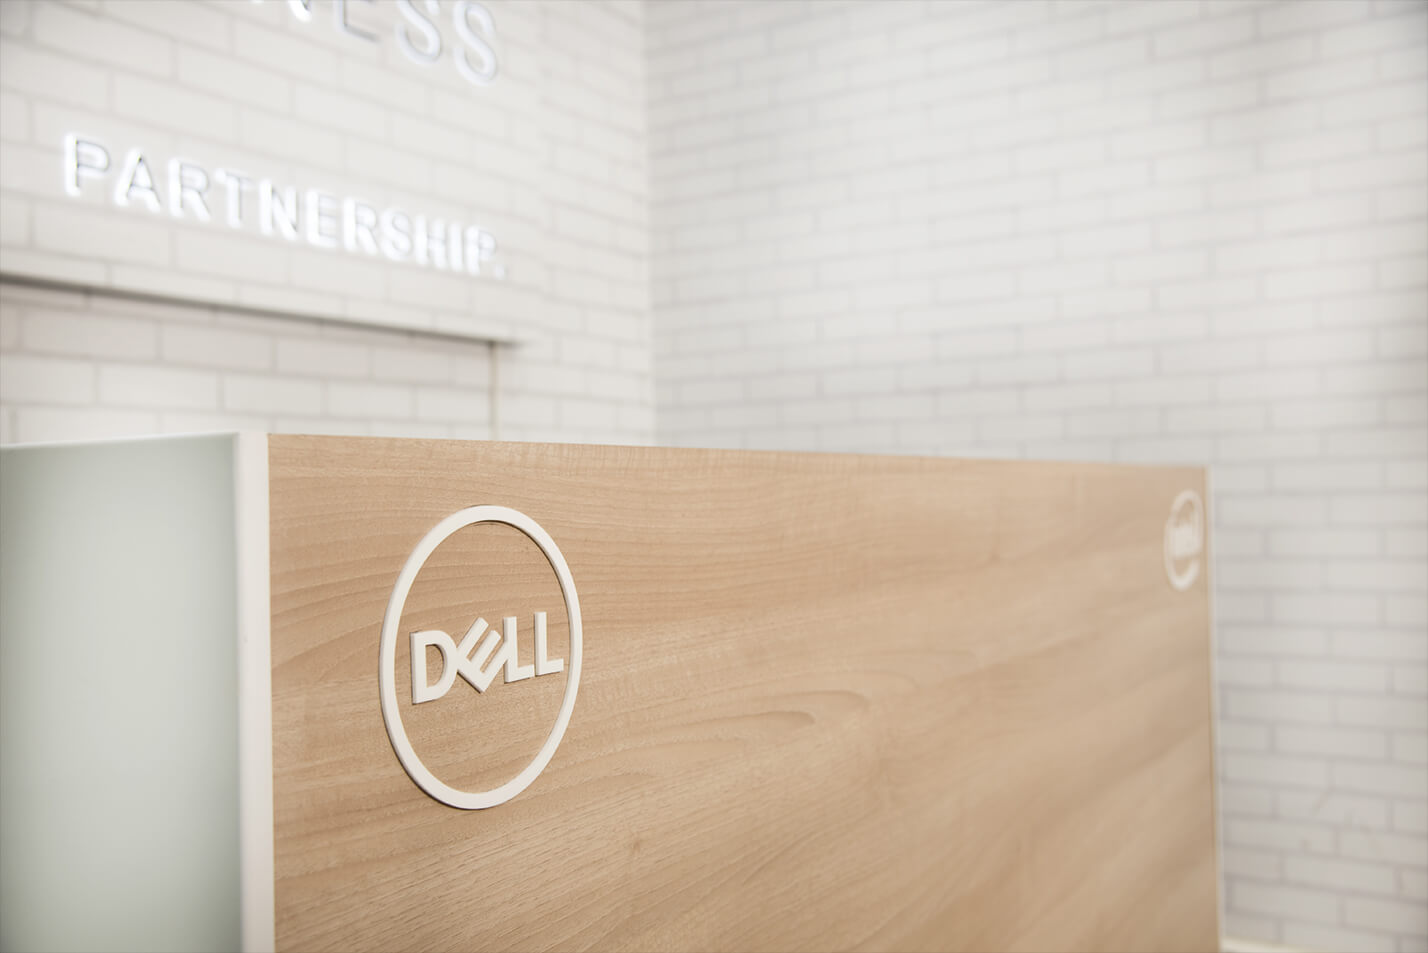 DELL_-_SMALL_BUSINESS_SOLUTIONS_CENTRE_5